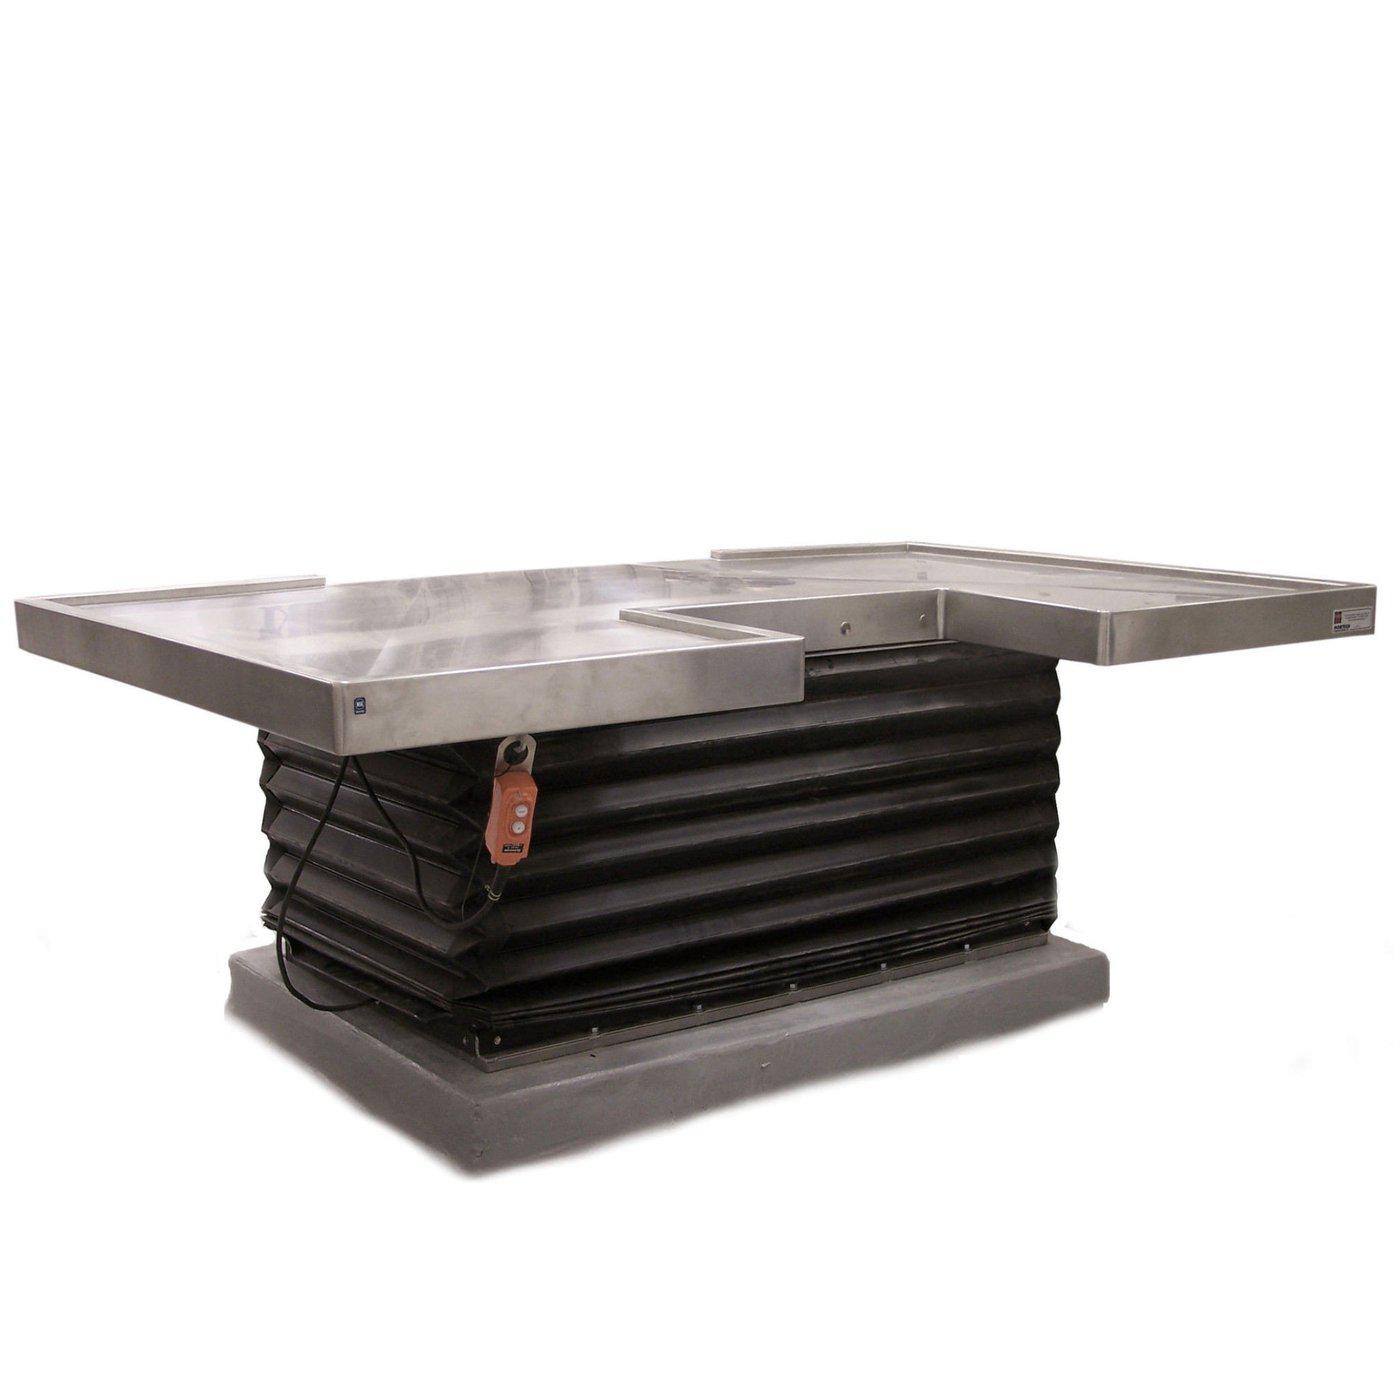 Large Hydraulic Necropsy Table-Necropsy Dissection Tables-Mortech Manufacturing Company Inc. Quality Stainless Steel Autopsy, Morgue, Funeral Home, Necropsy, Veterinary / Anatomy, Dissection Equipment and Accessories